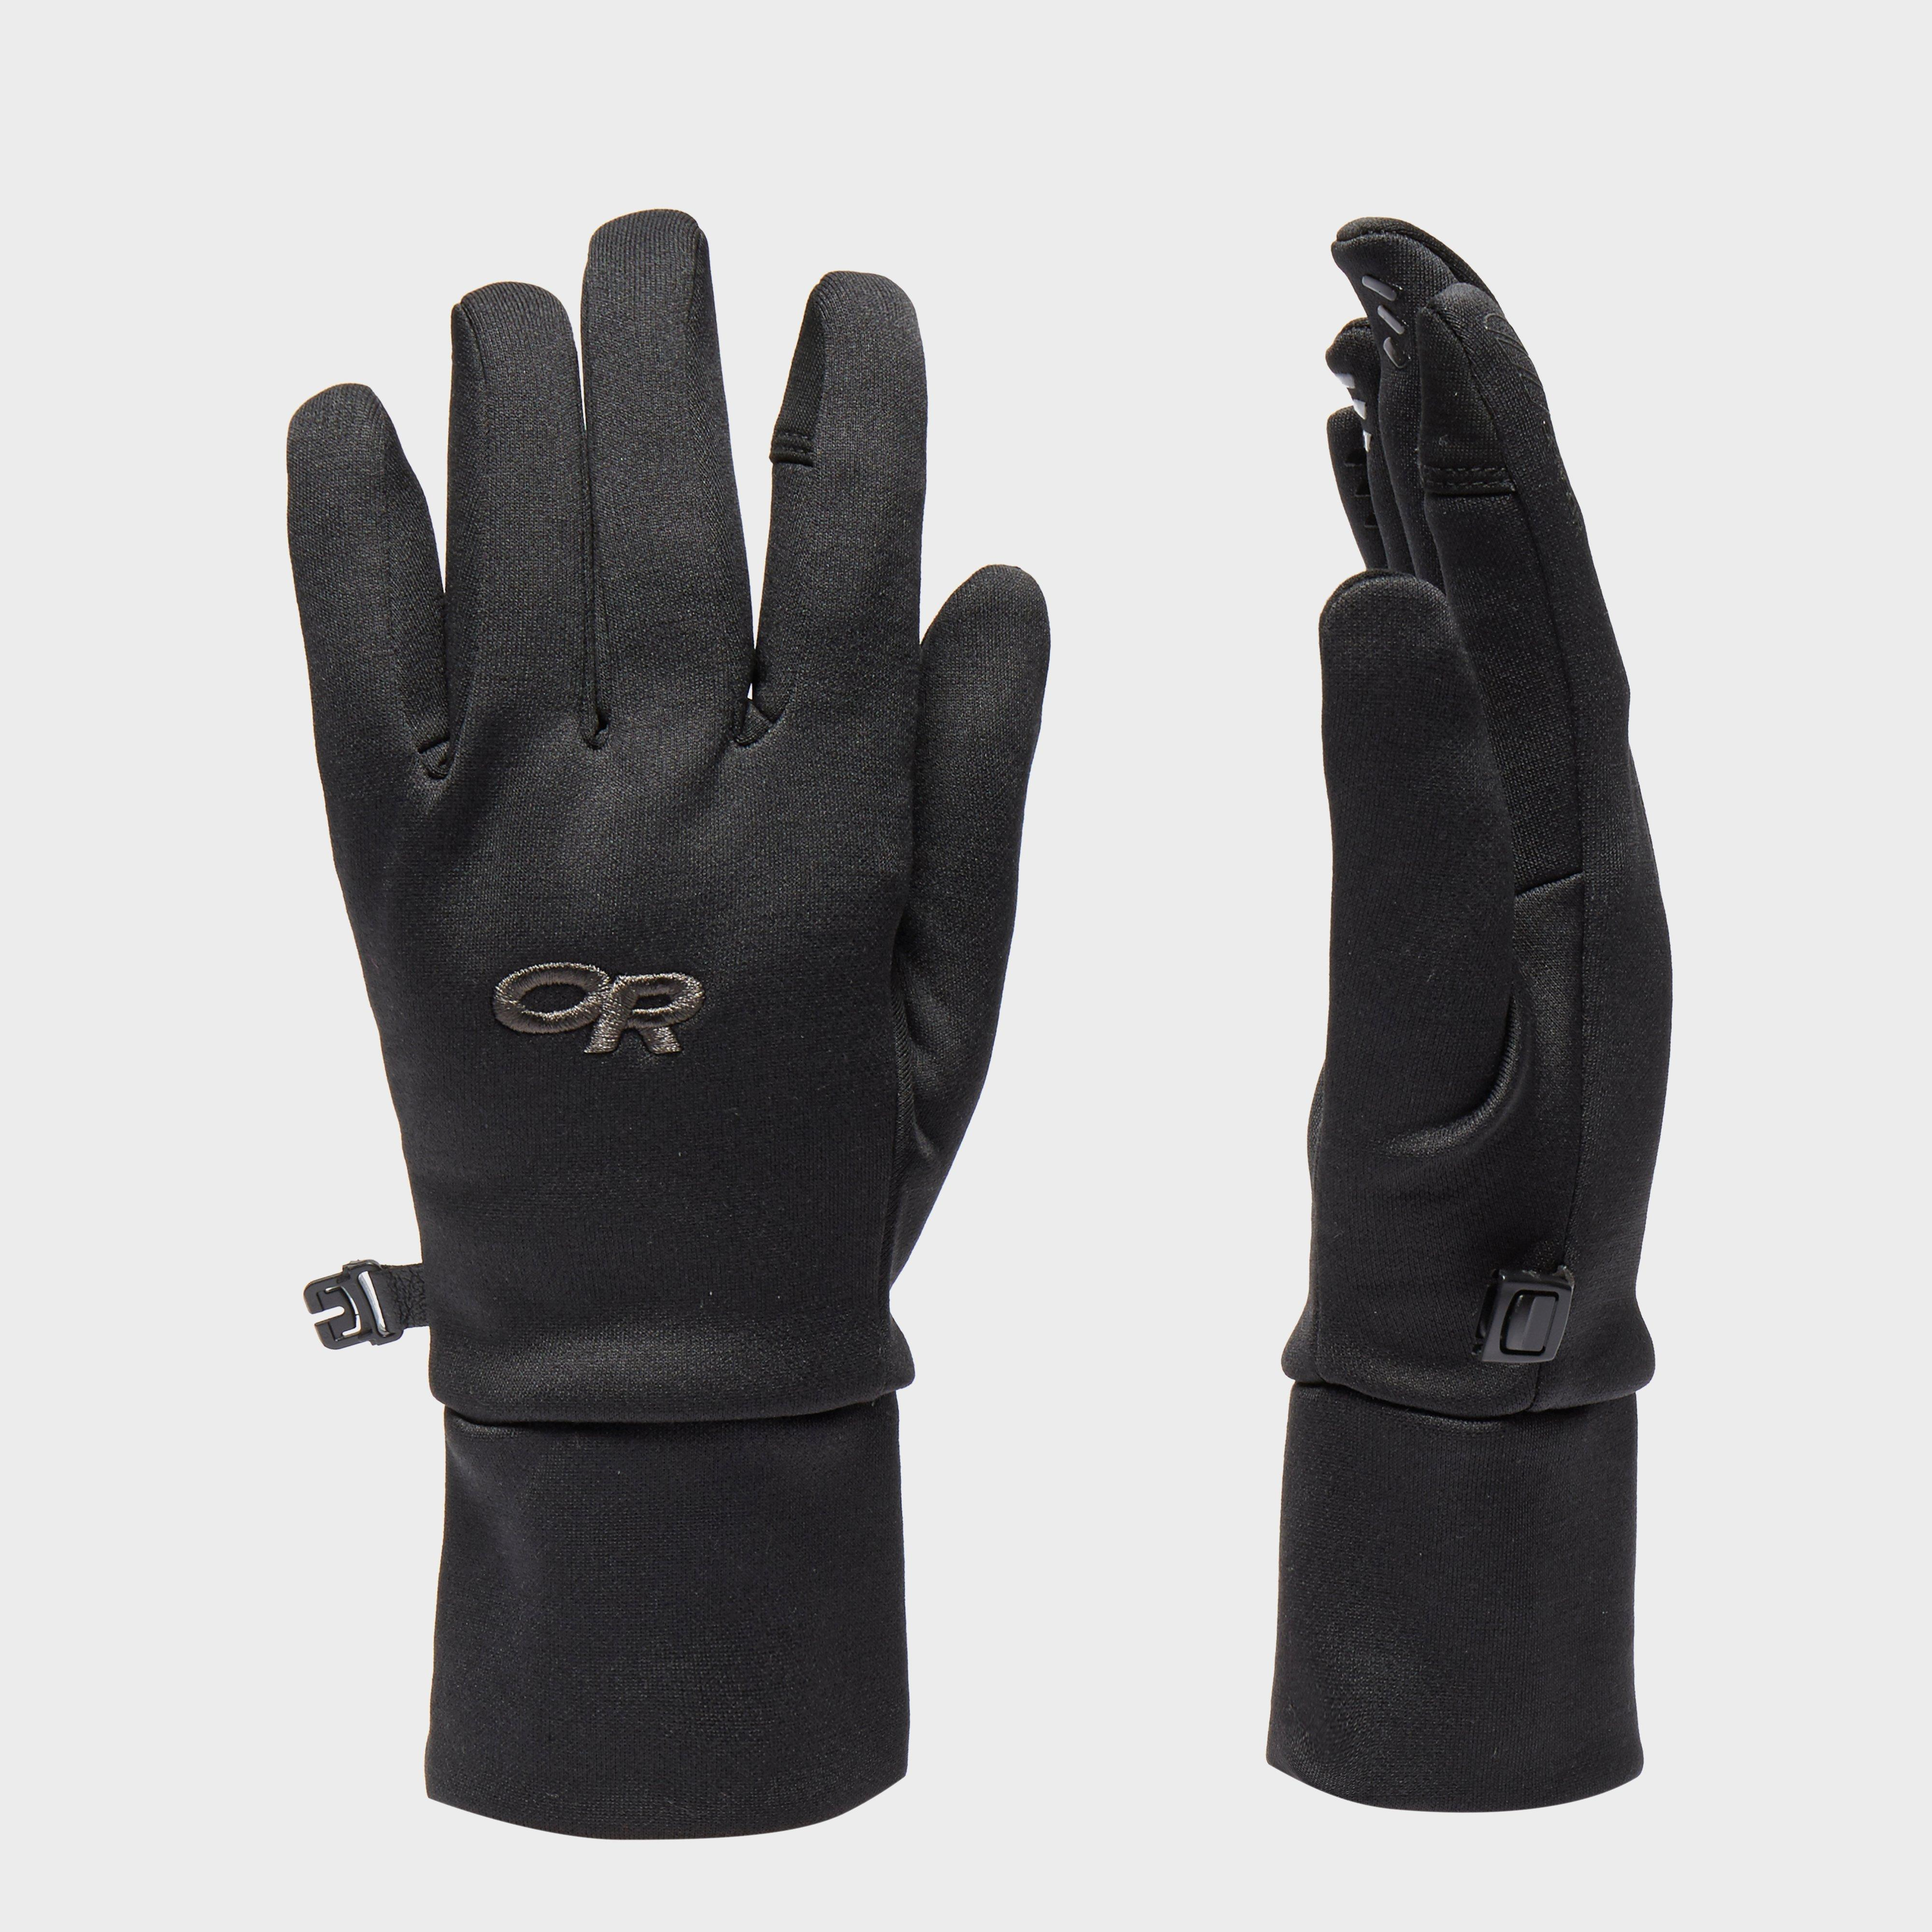 Outdoor Research Outdoor Research Womens PL400 Sensor Gloves - Grey, Grey